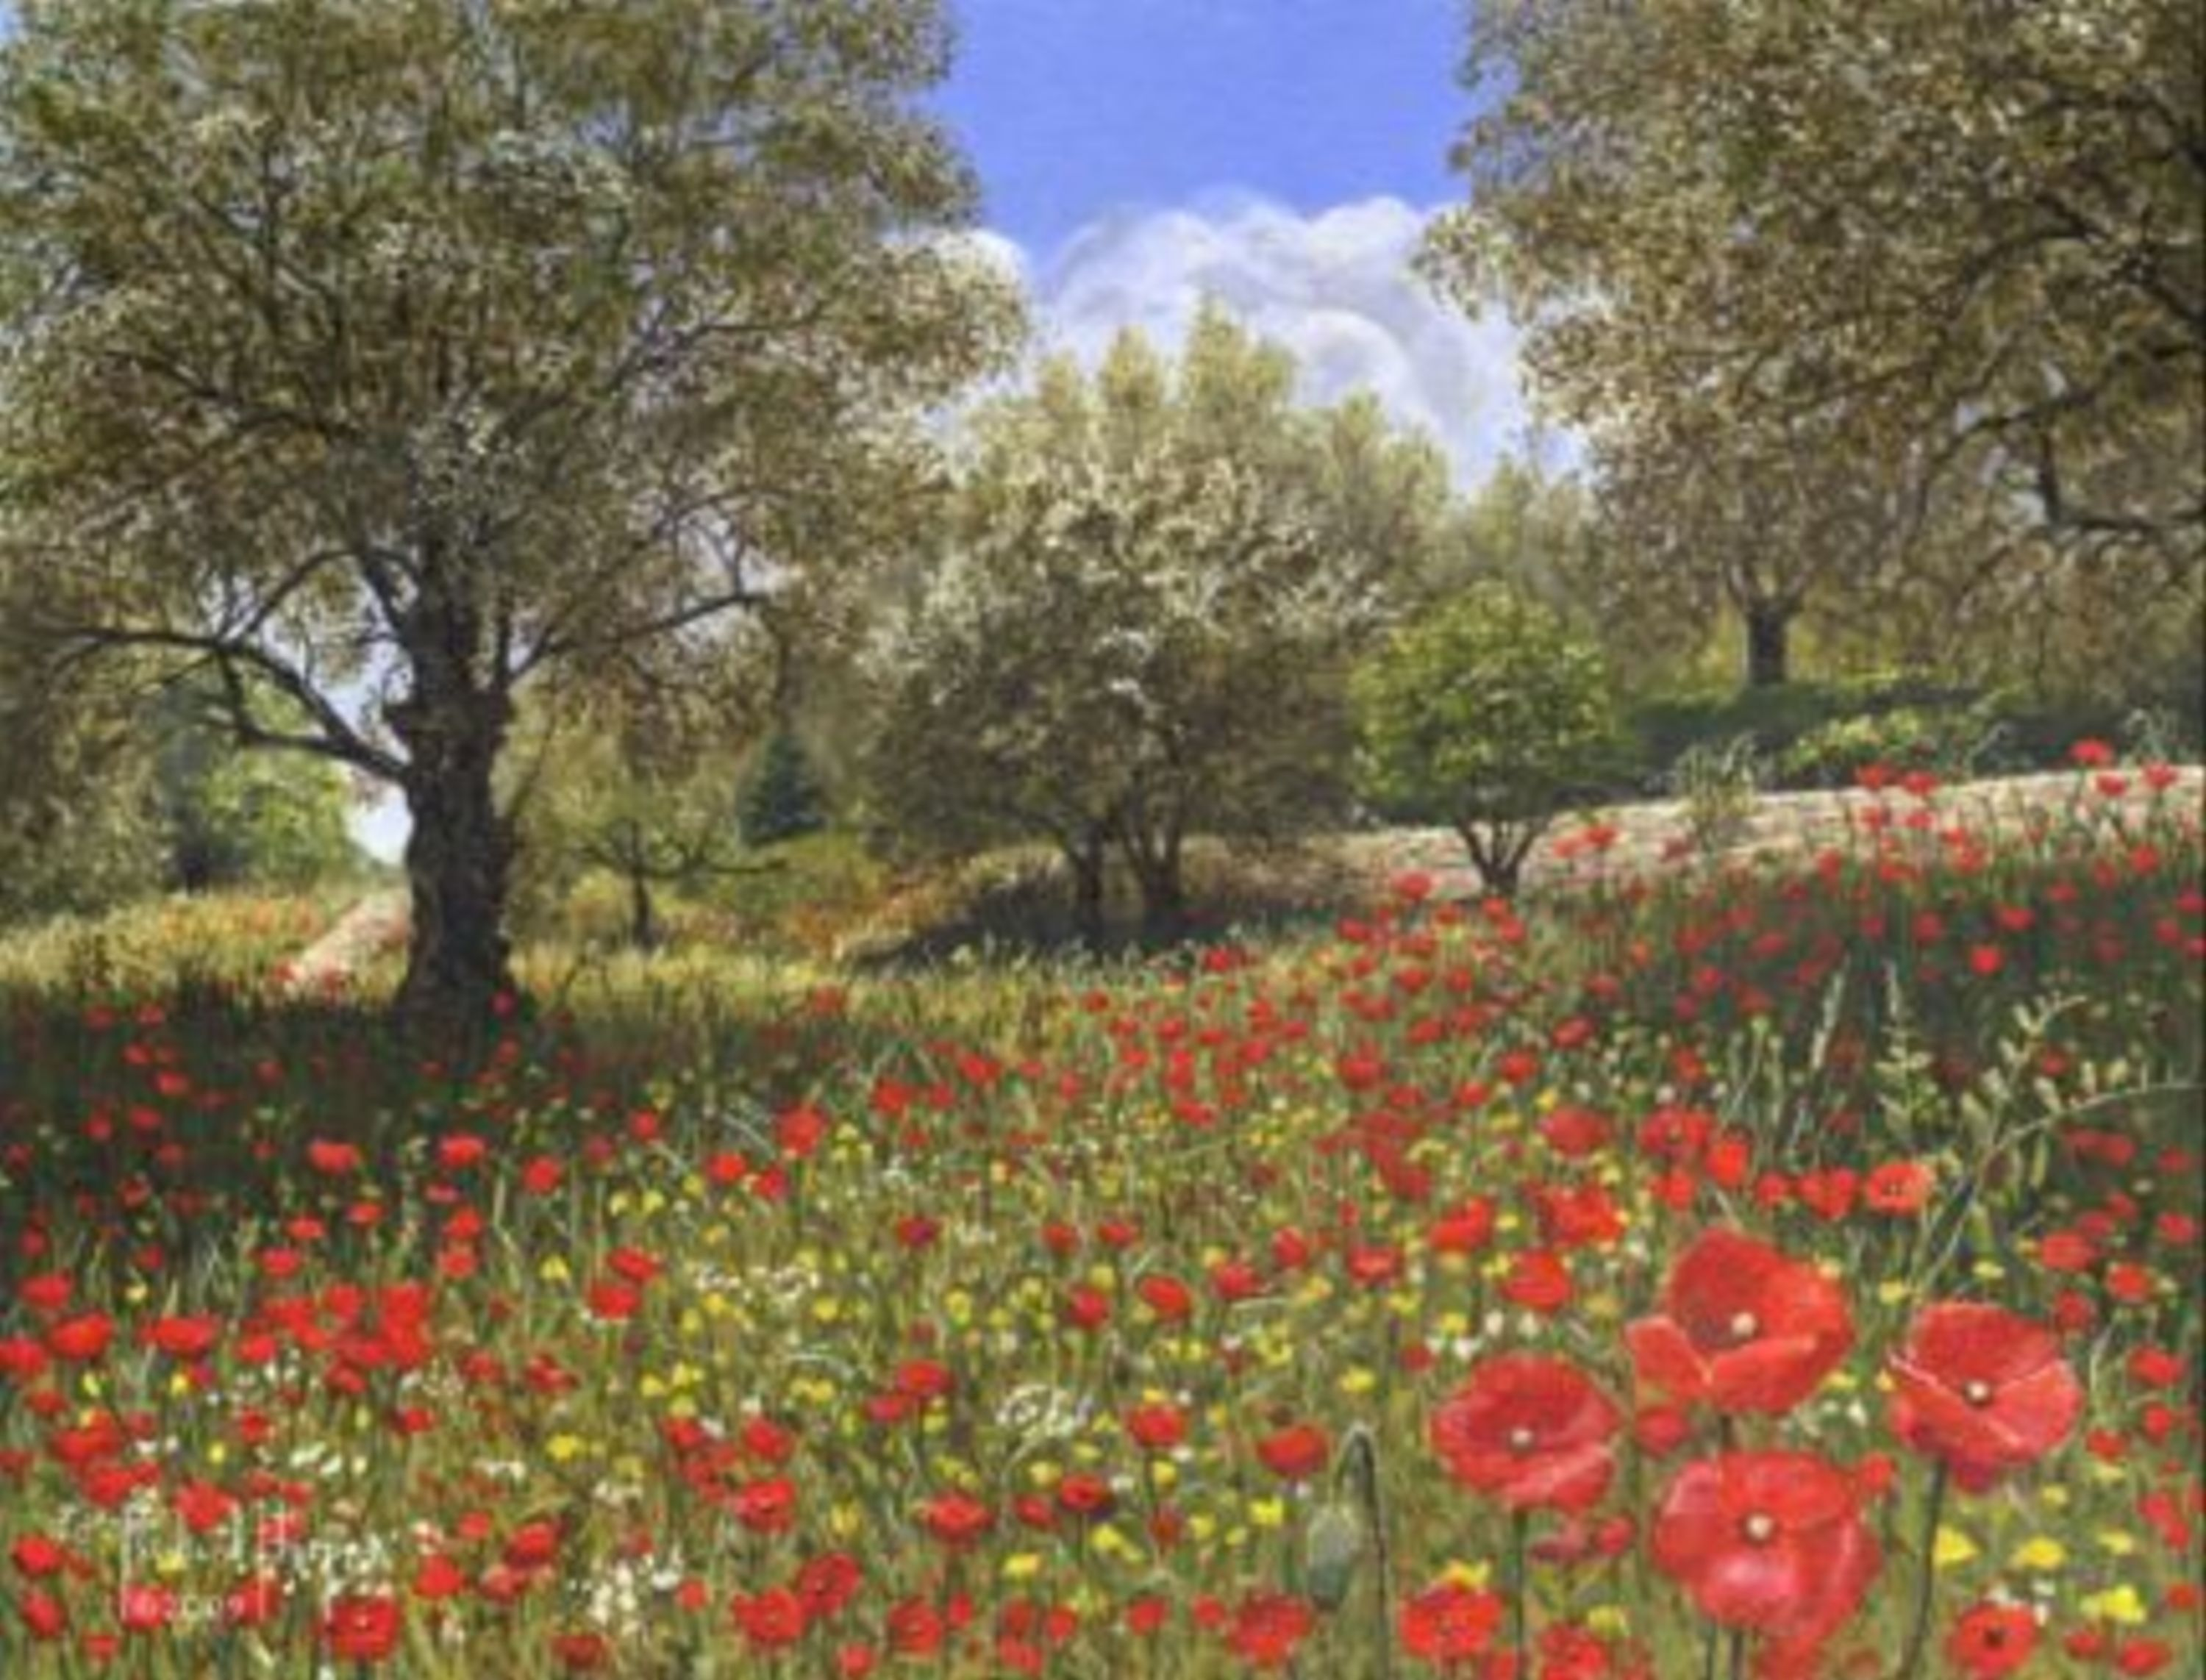 Painting - Andalucian Poppies, Spain